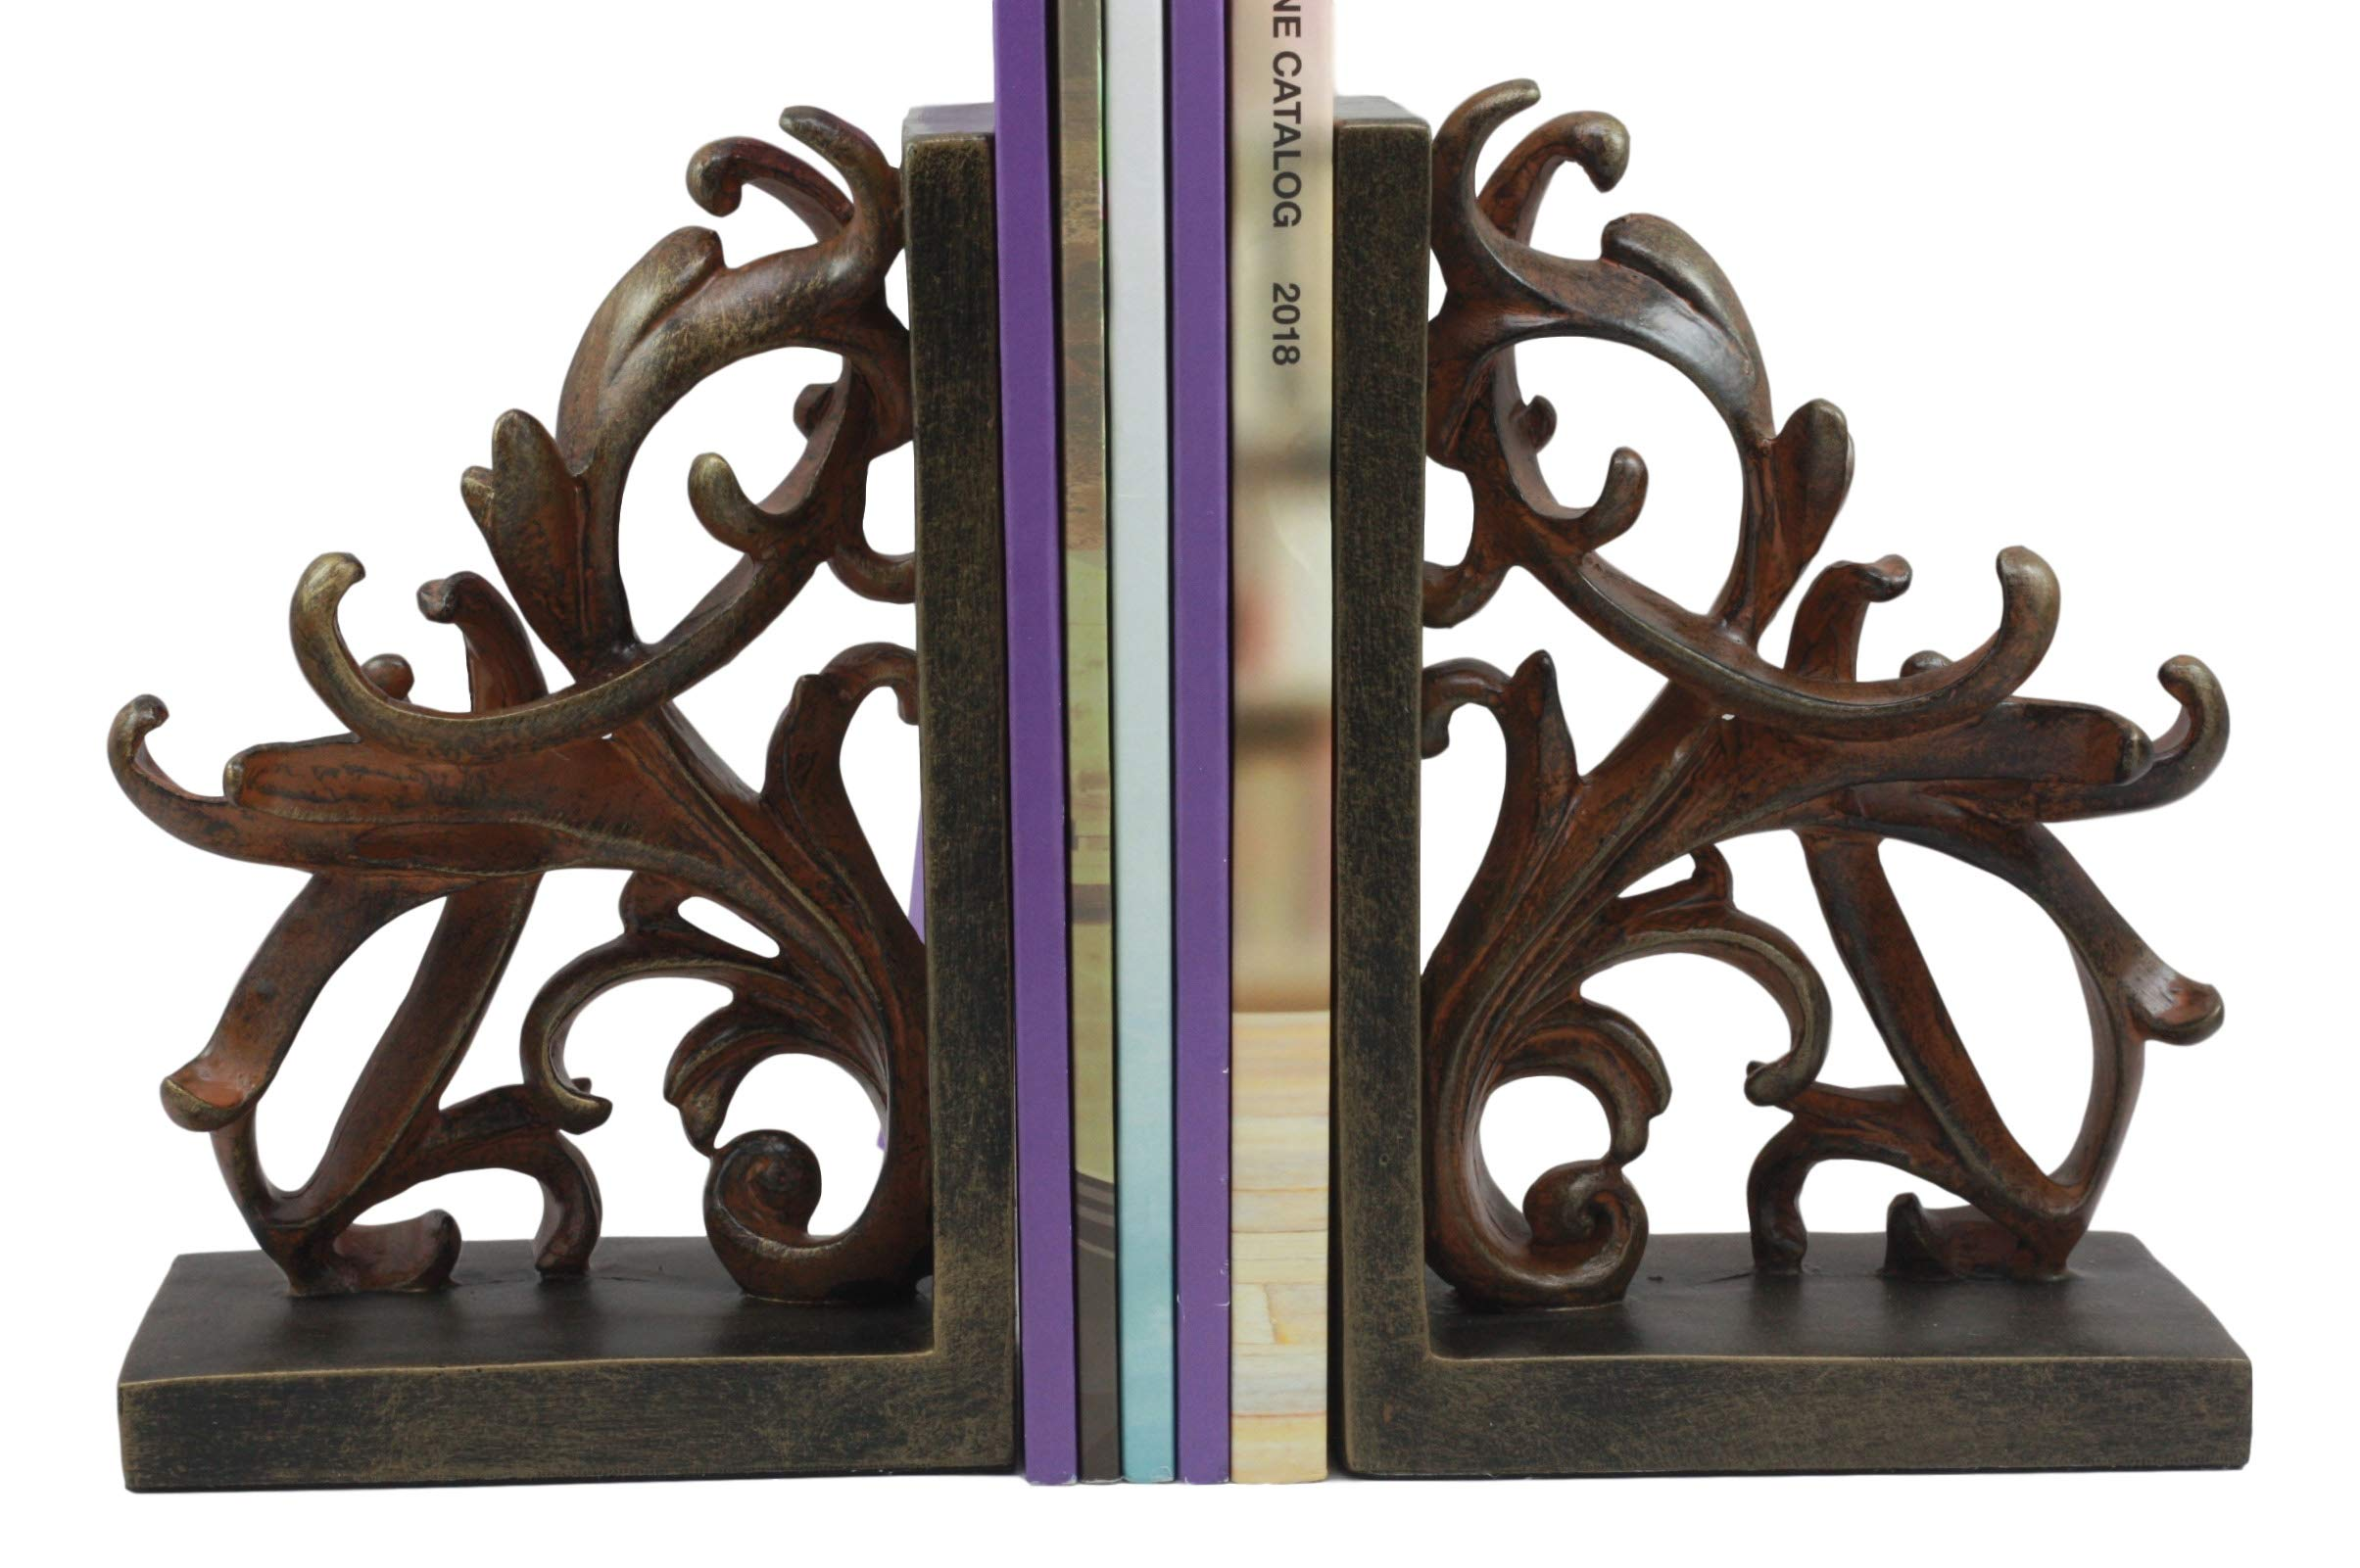 Ebros Vintage Design Ornate Scroll Bookends Set Scroll Art Statue Pair 7.5'' Tall Scrollwork Graphic Bookend Figurines Home Office Library Decor by Ebros Gift